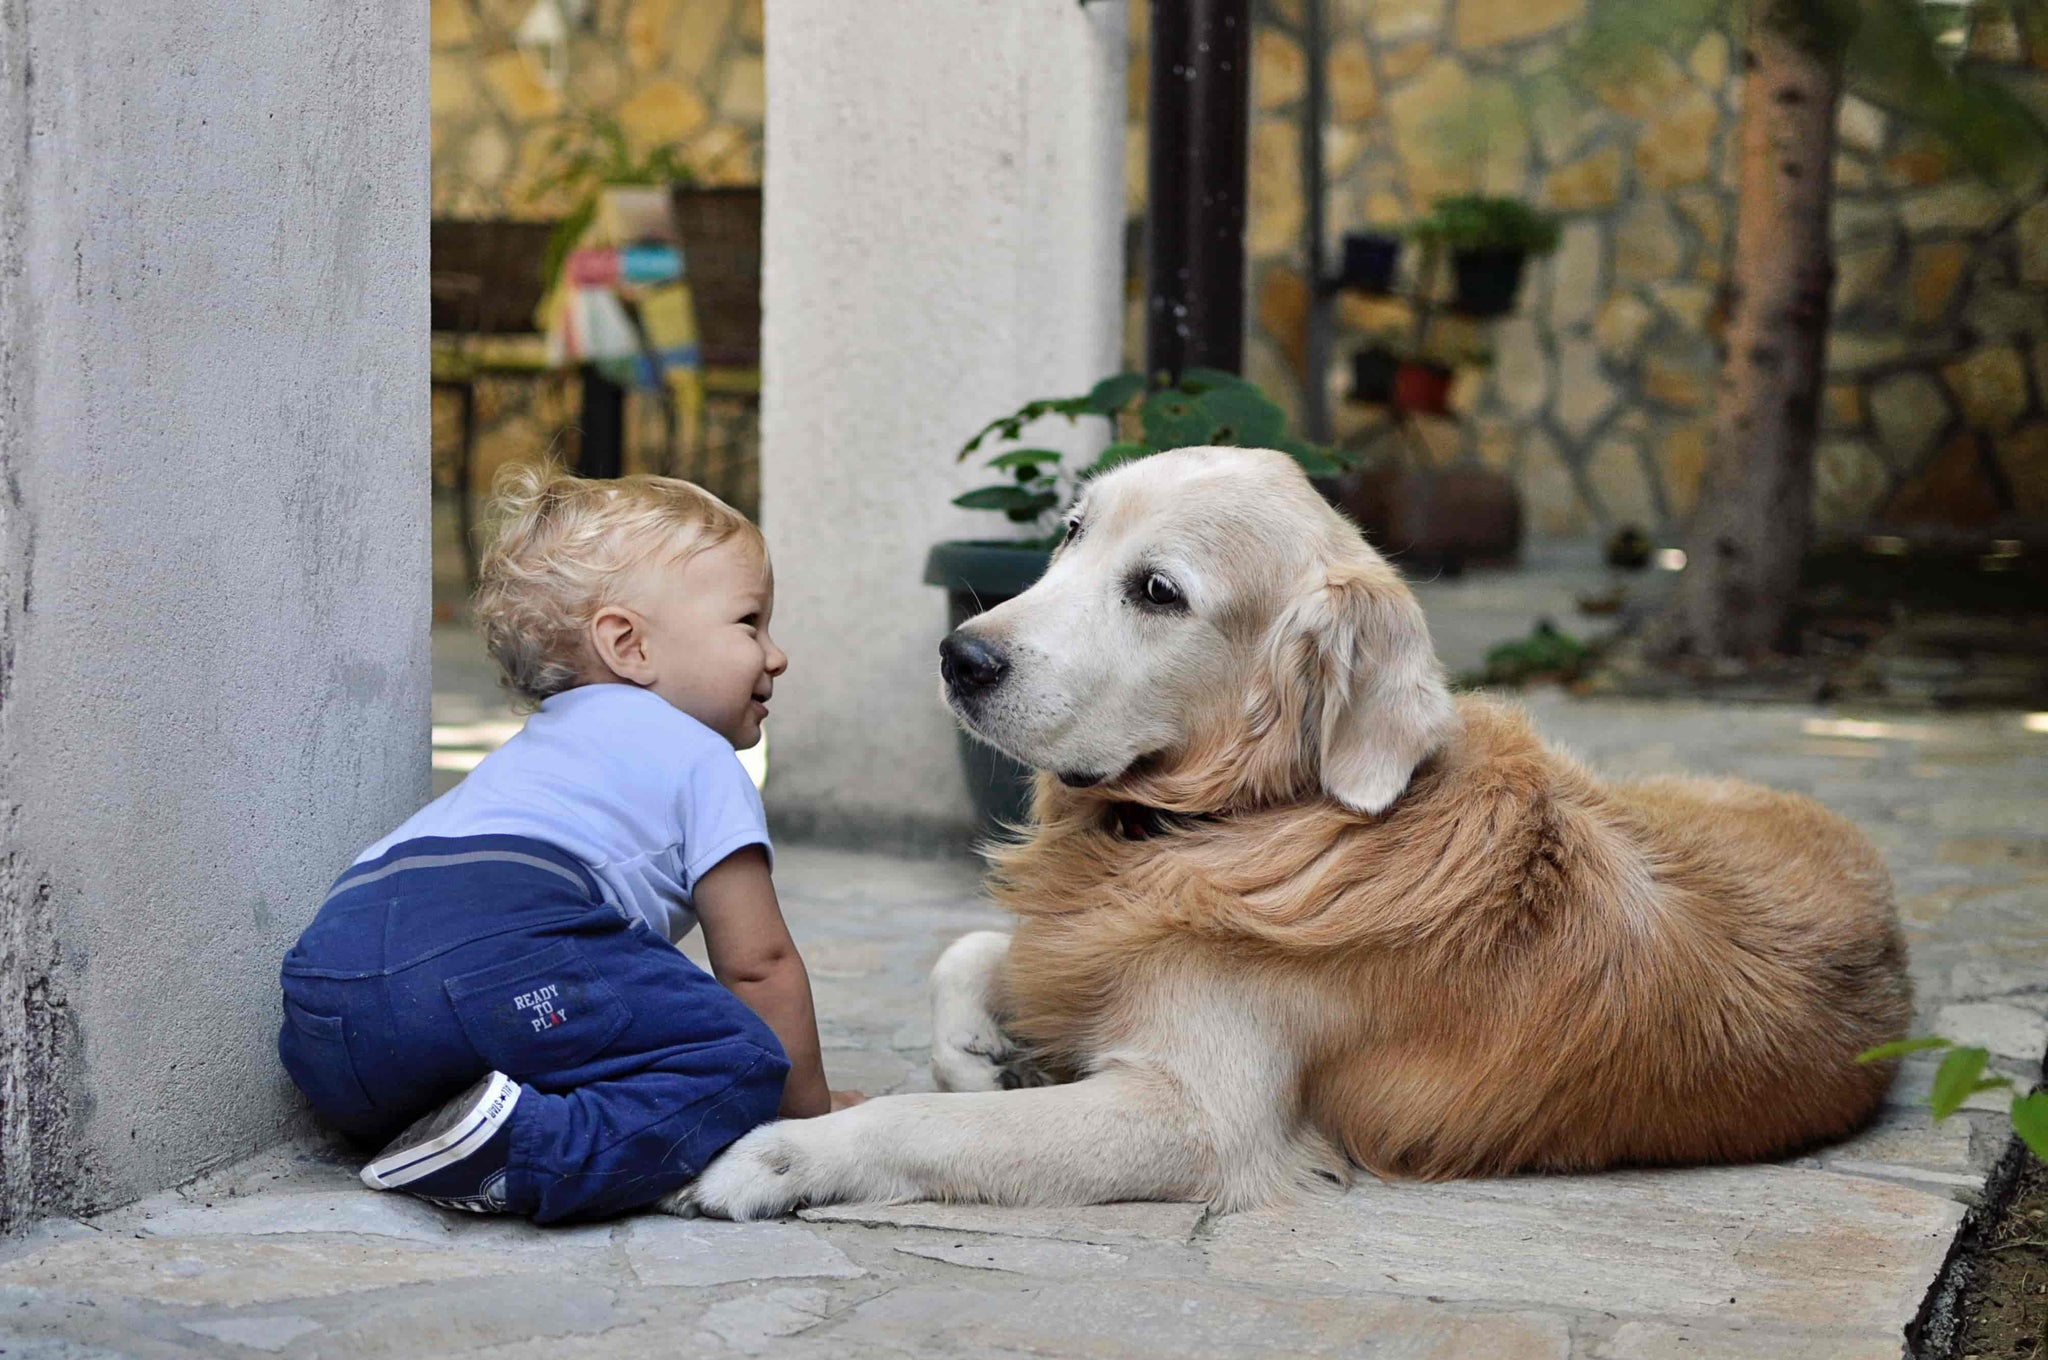 The important role pets play in a child's development